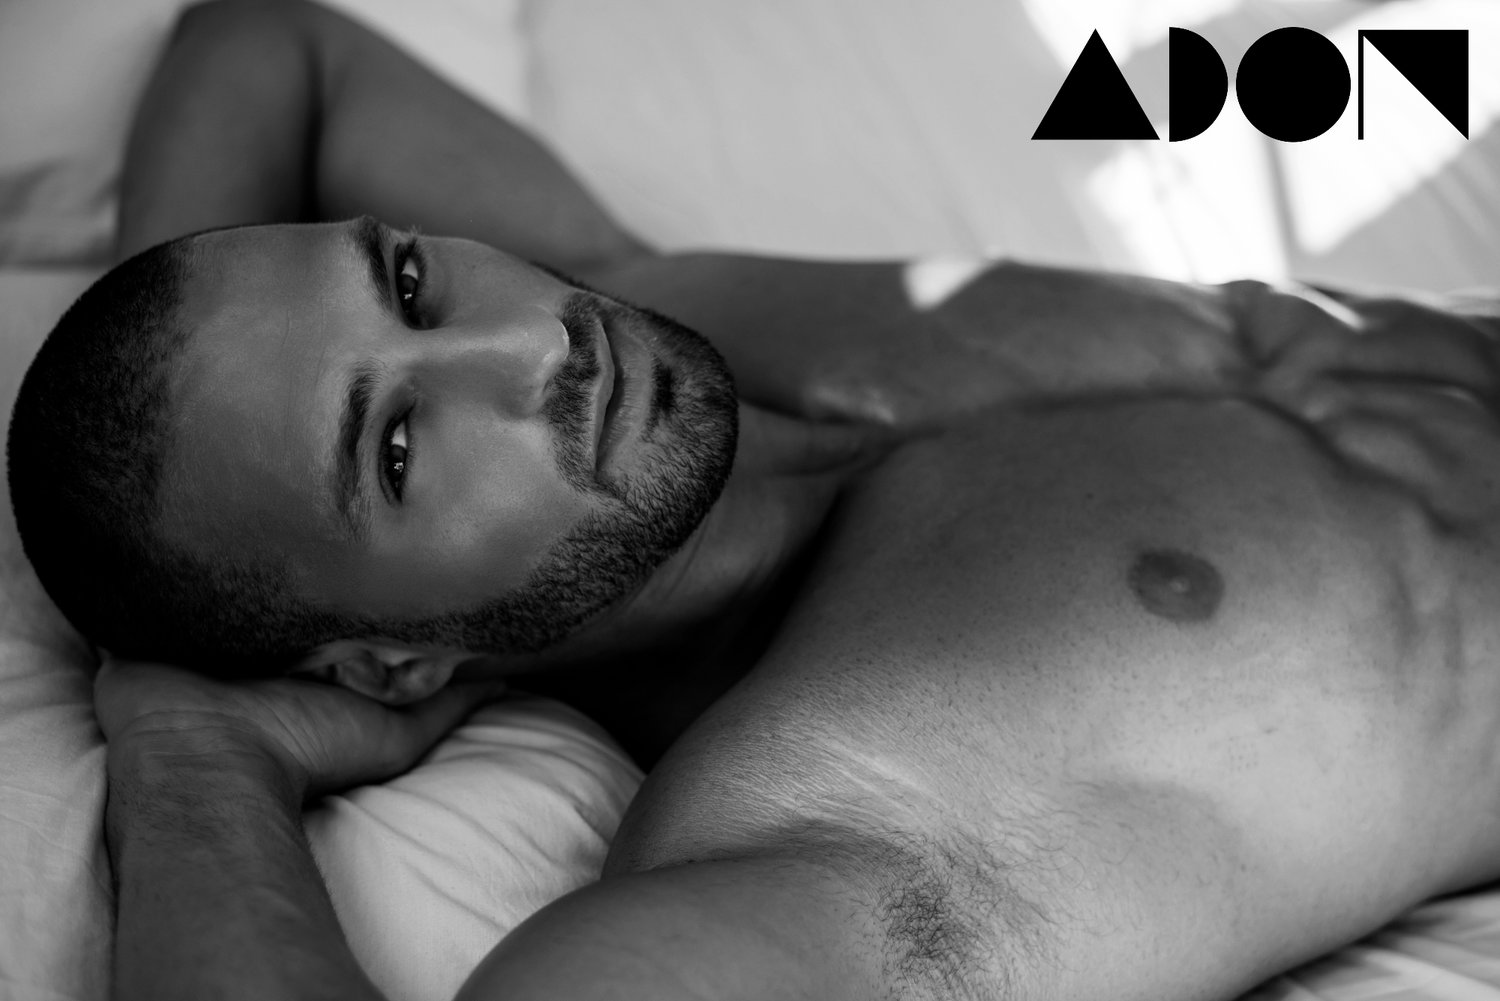 Adon Exclusive: Model Andreas Demetriou By Stavros Christodoulou